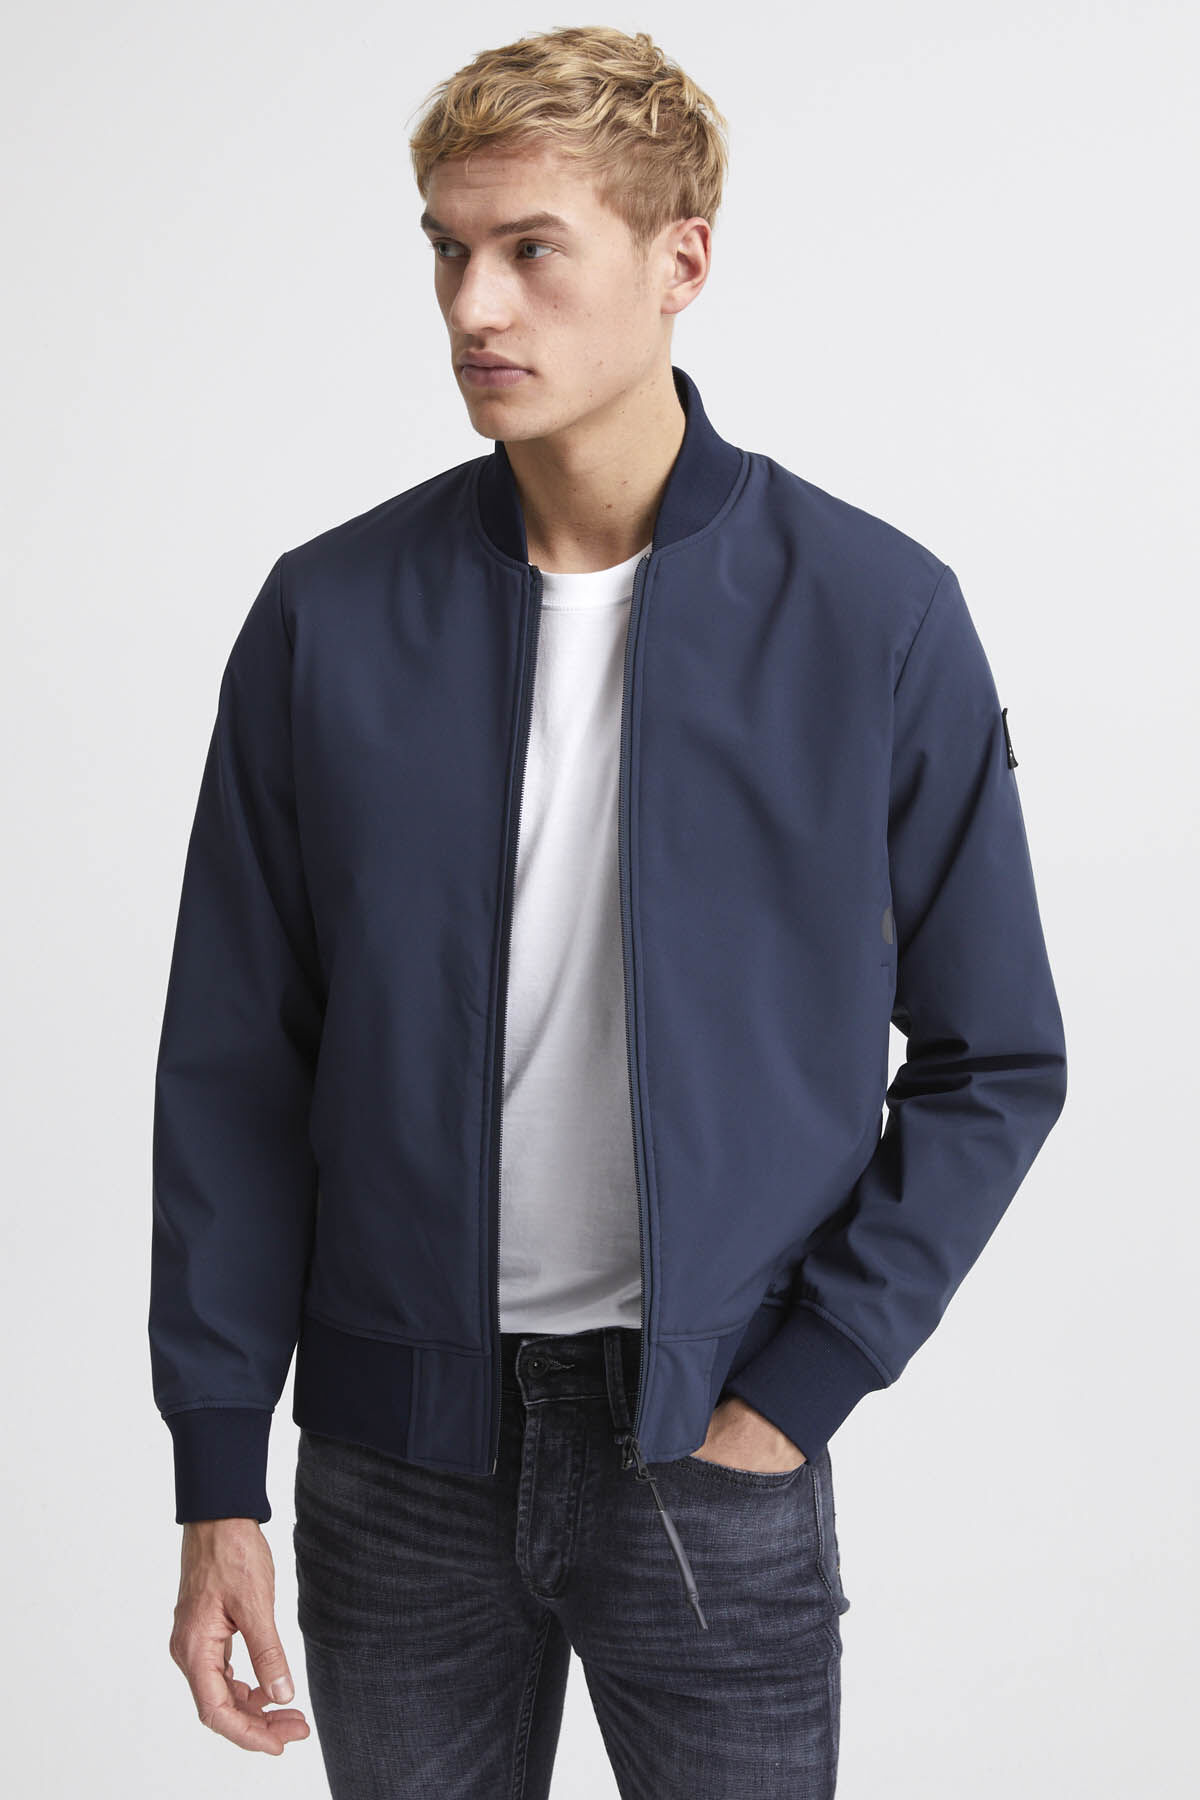 TOBRASCO JACKET LSS